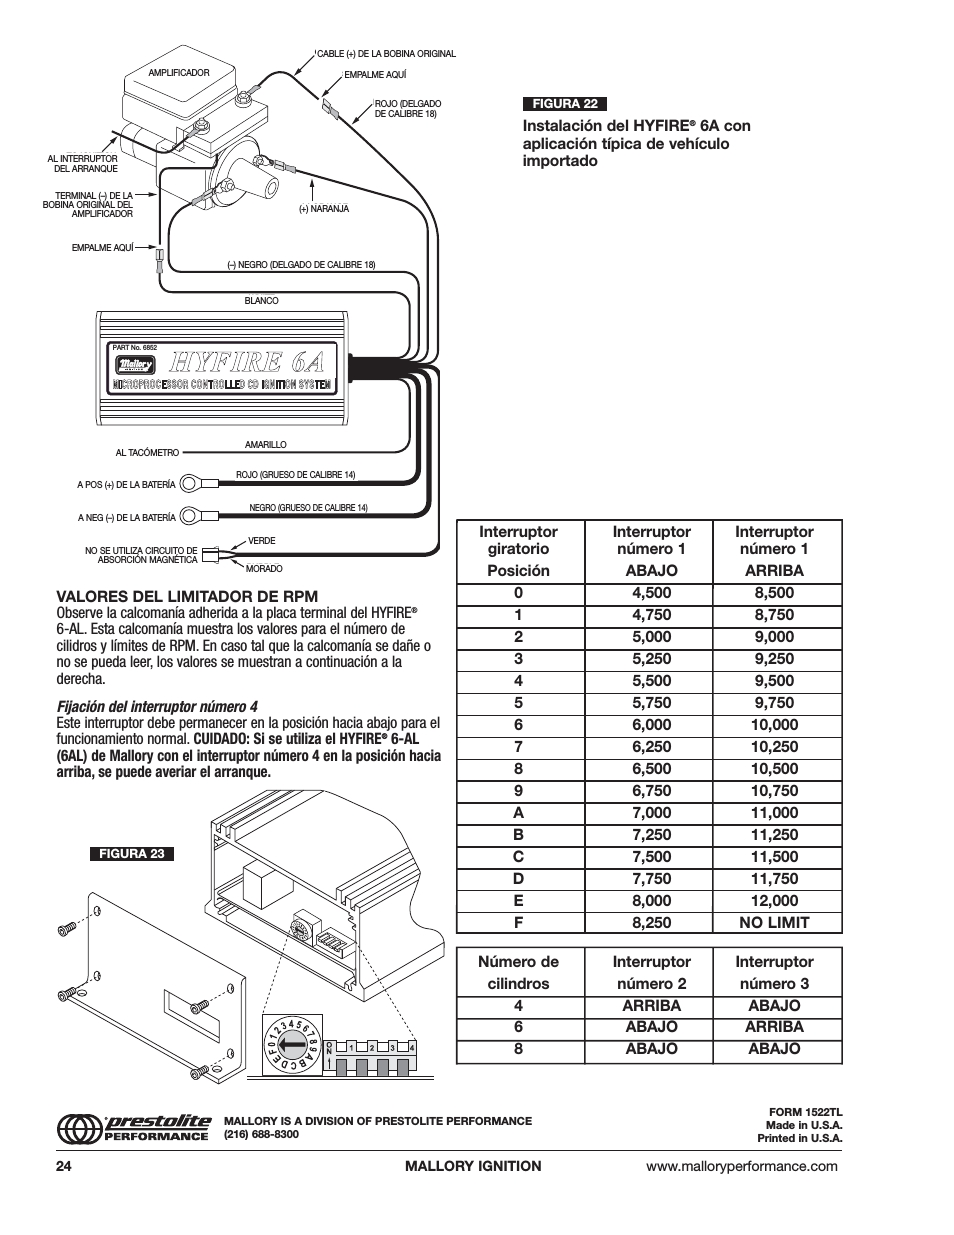 fire alarm systems wiring diagrams mallory ignition wiring diagram | free wiring diagram